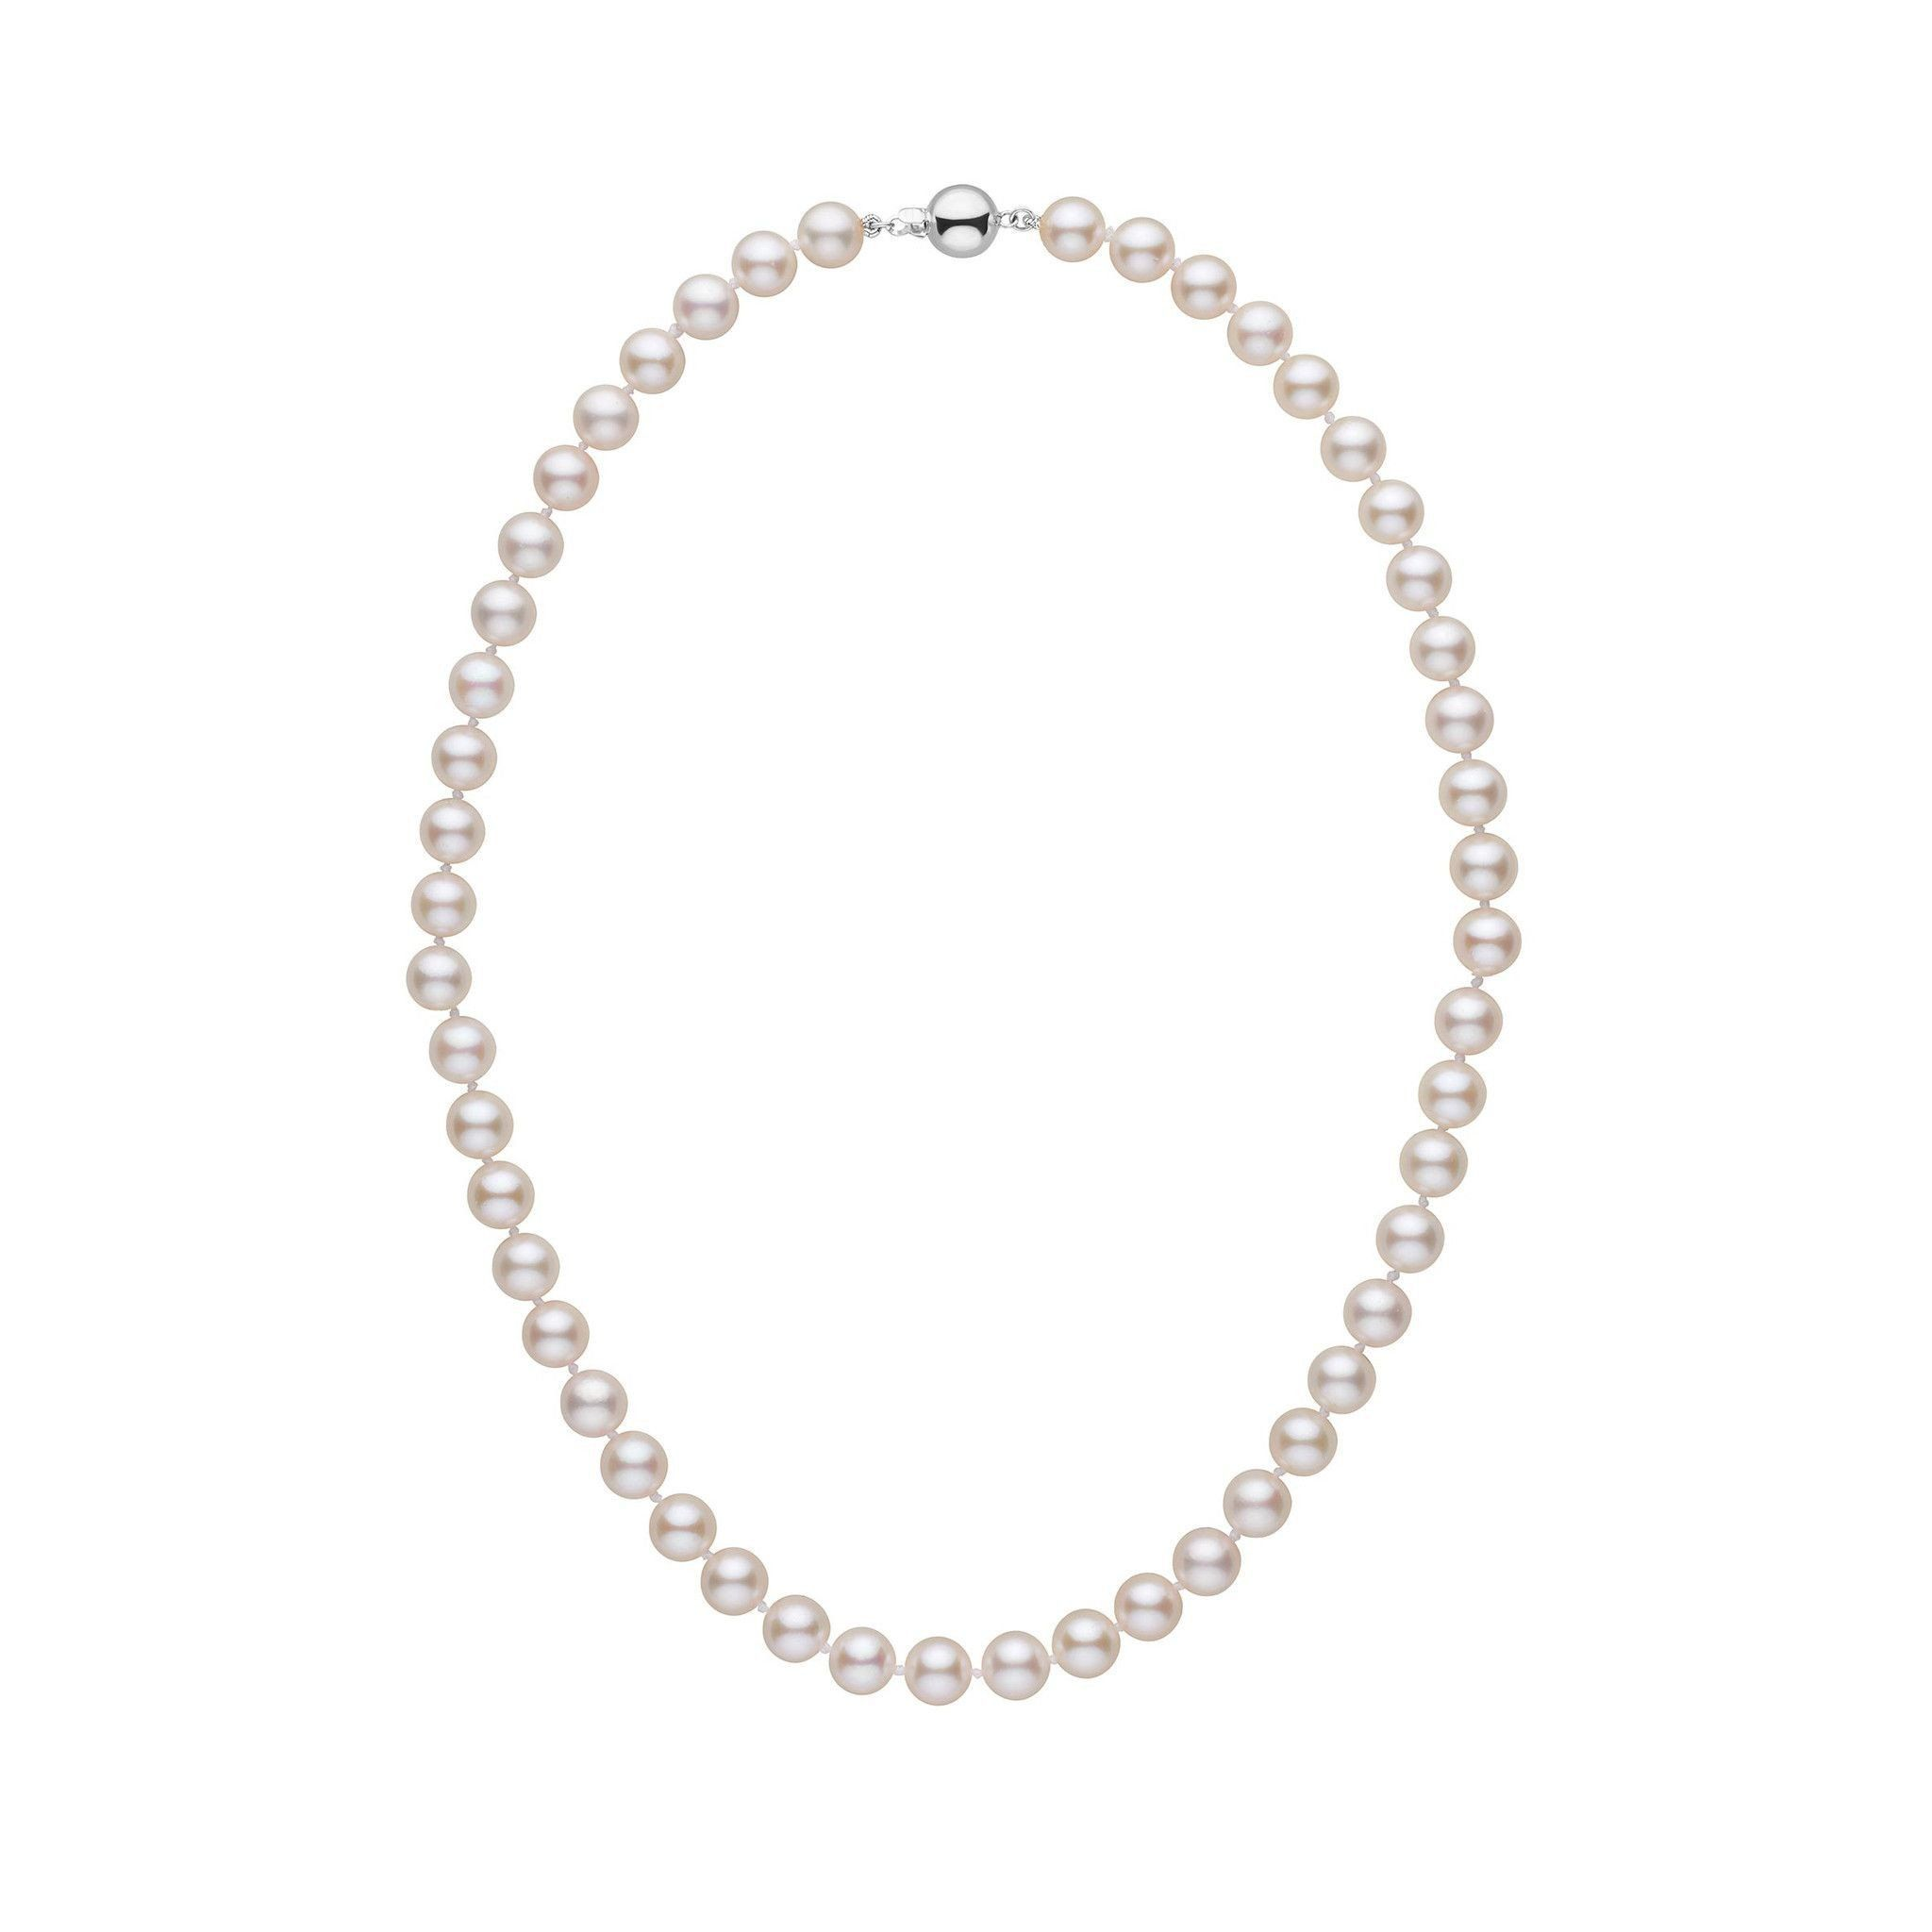 7.0-7.5 mm White Akoya 16 inch AA+ Pearl Necklace